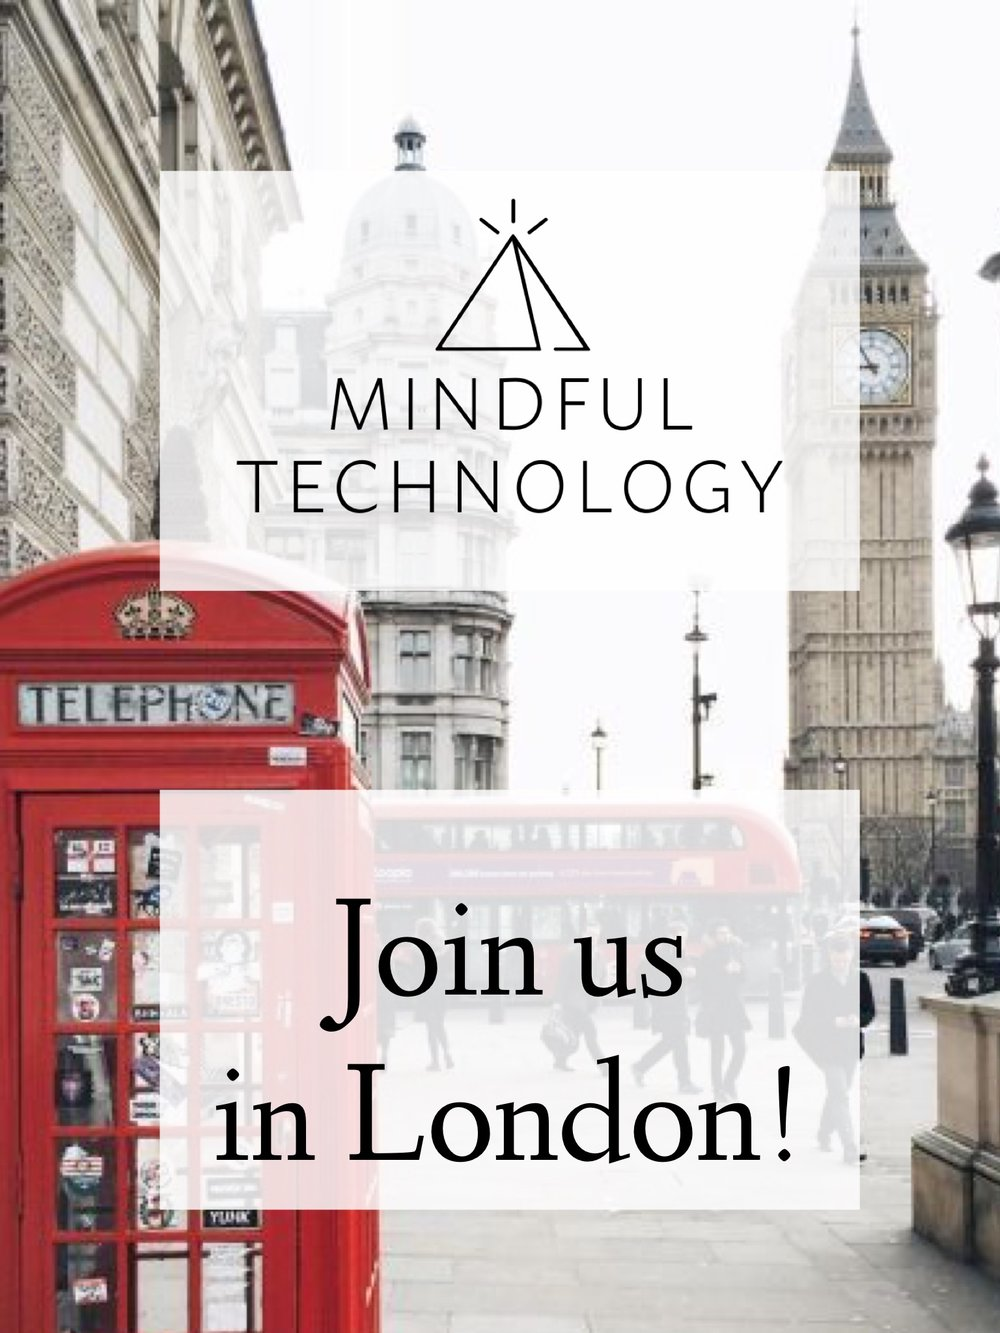 "A photo of Big Ben in London and a phone booth with the words over it, ""Mindful Technology. Join us in London!�"